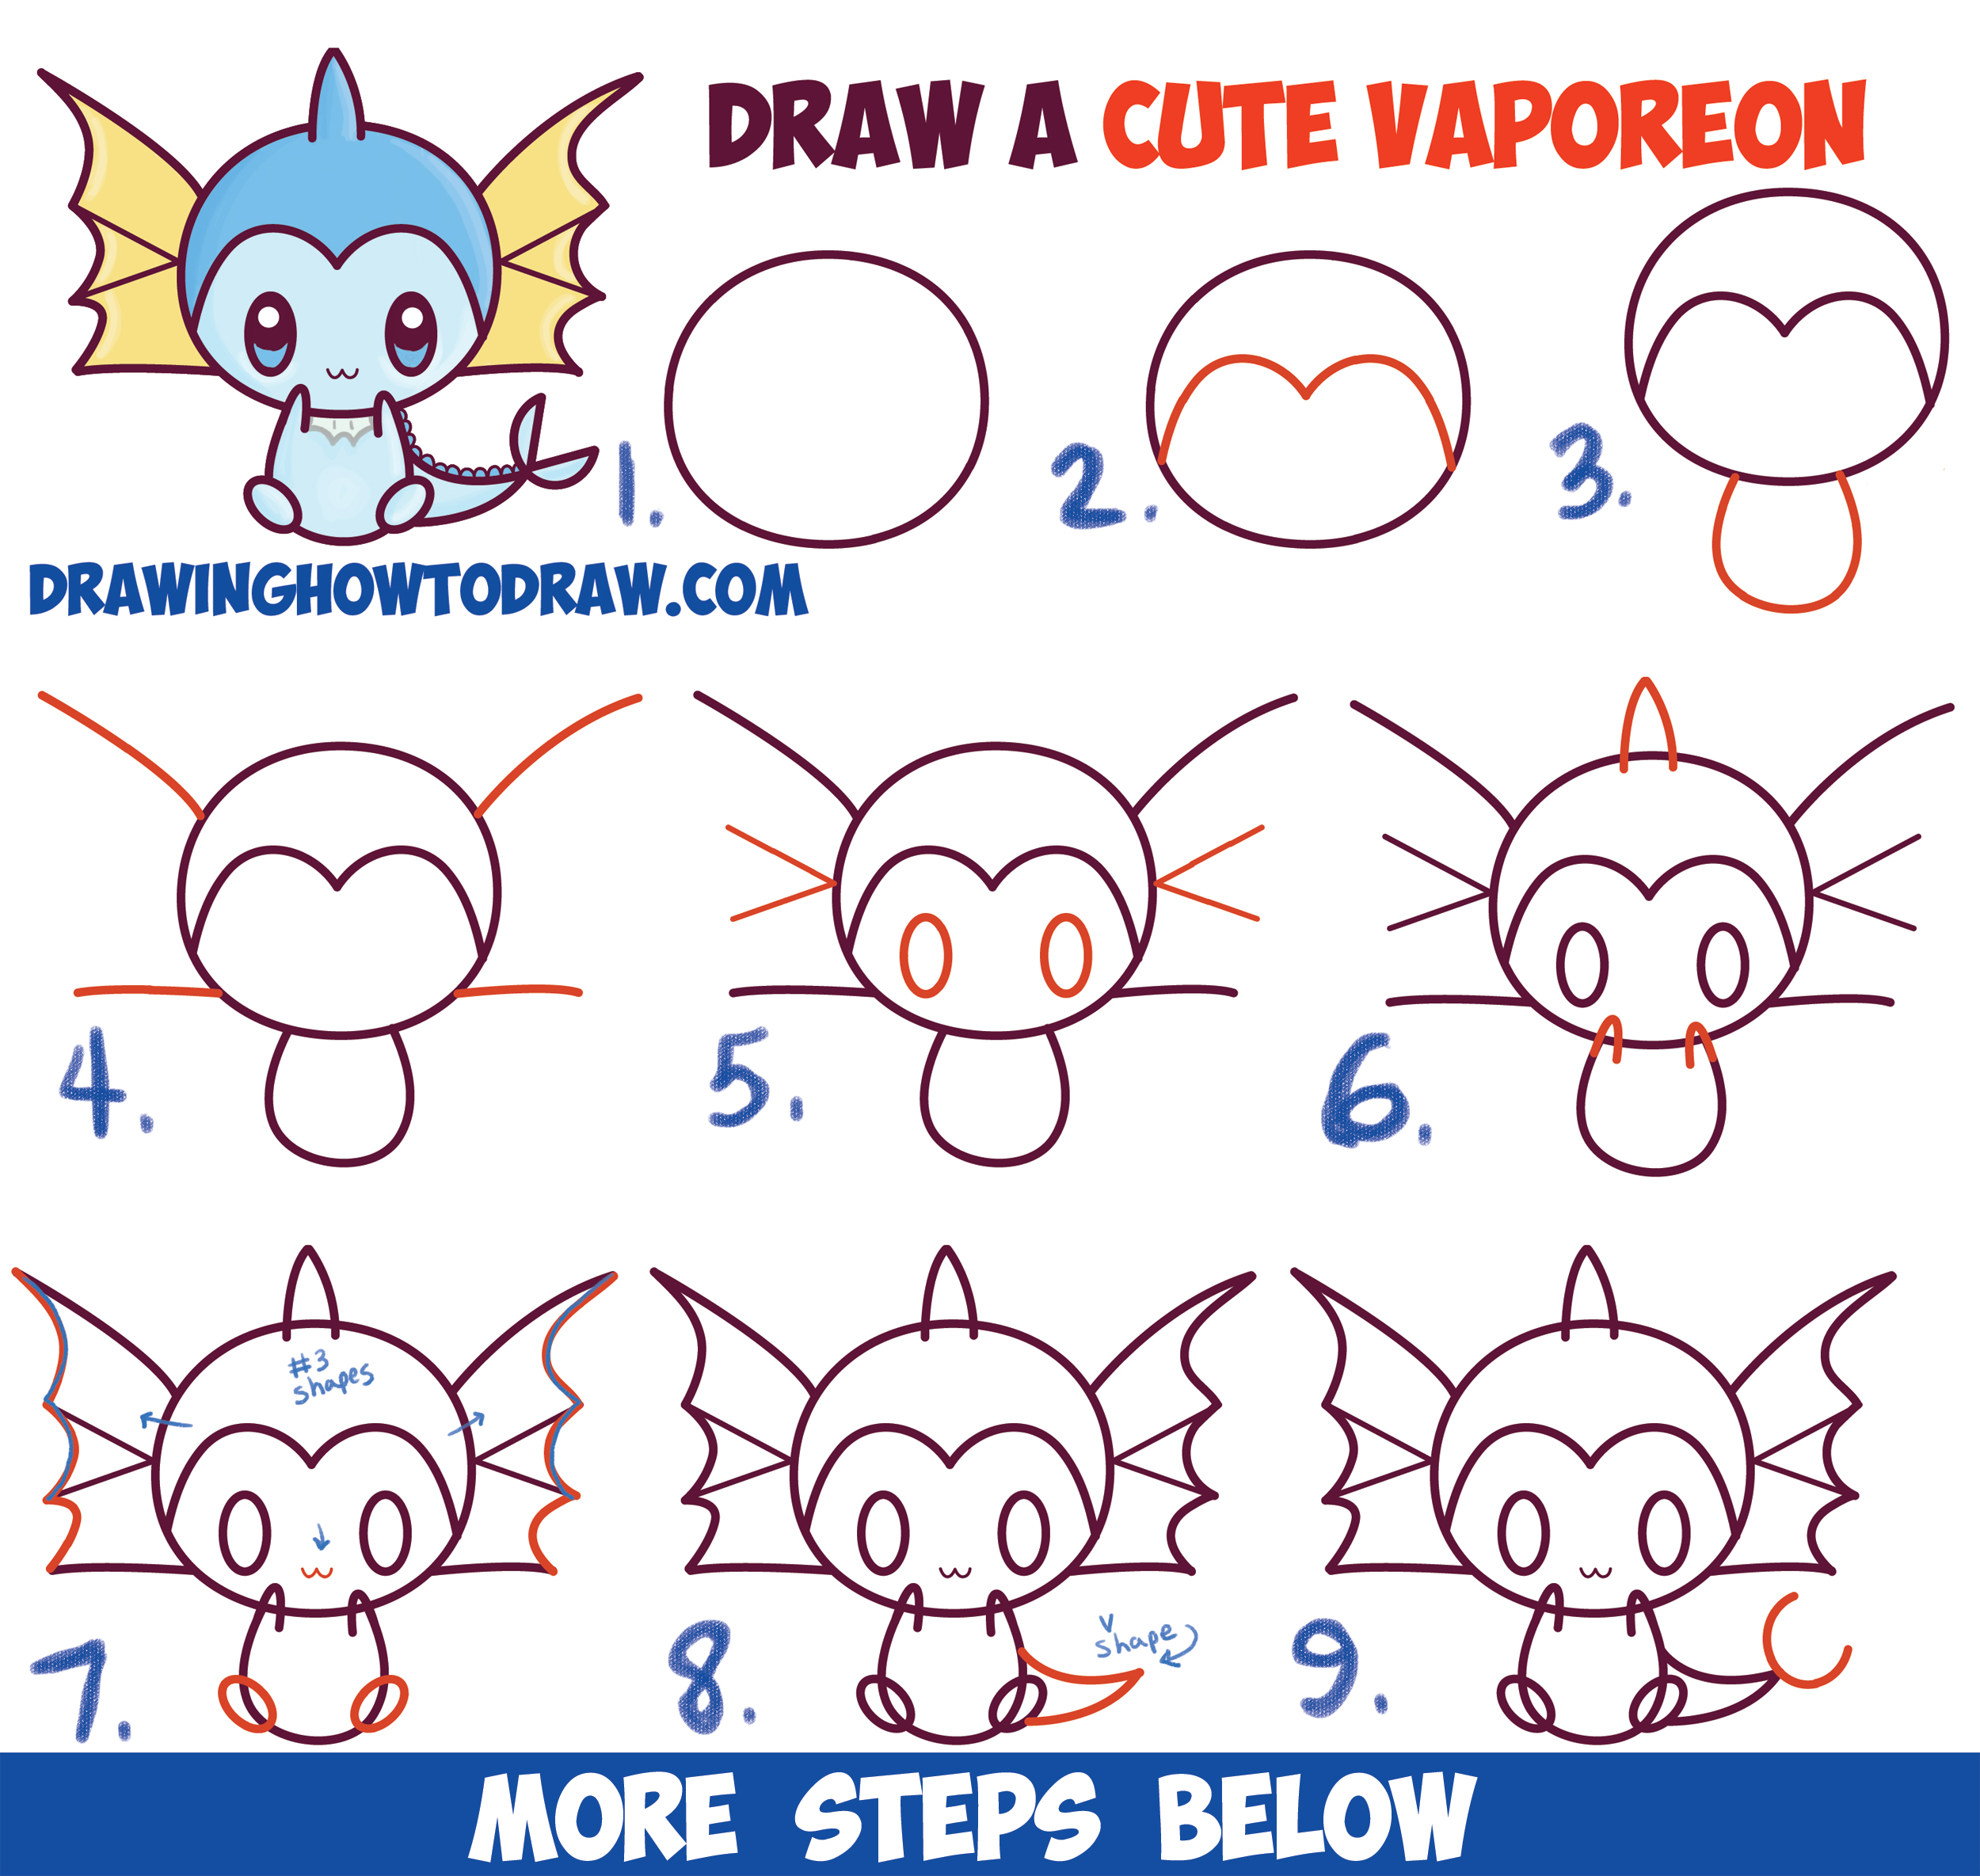 How to draw cute kawaii chibi vaporeon from pokemon easy for Drawing ideas for beginners step by step